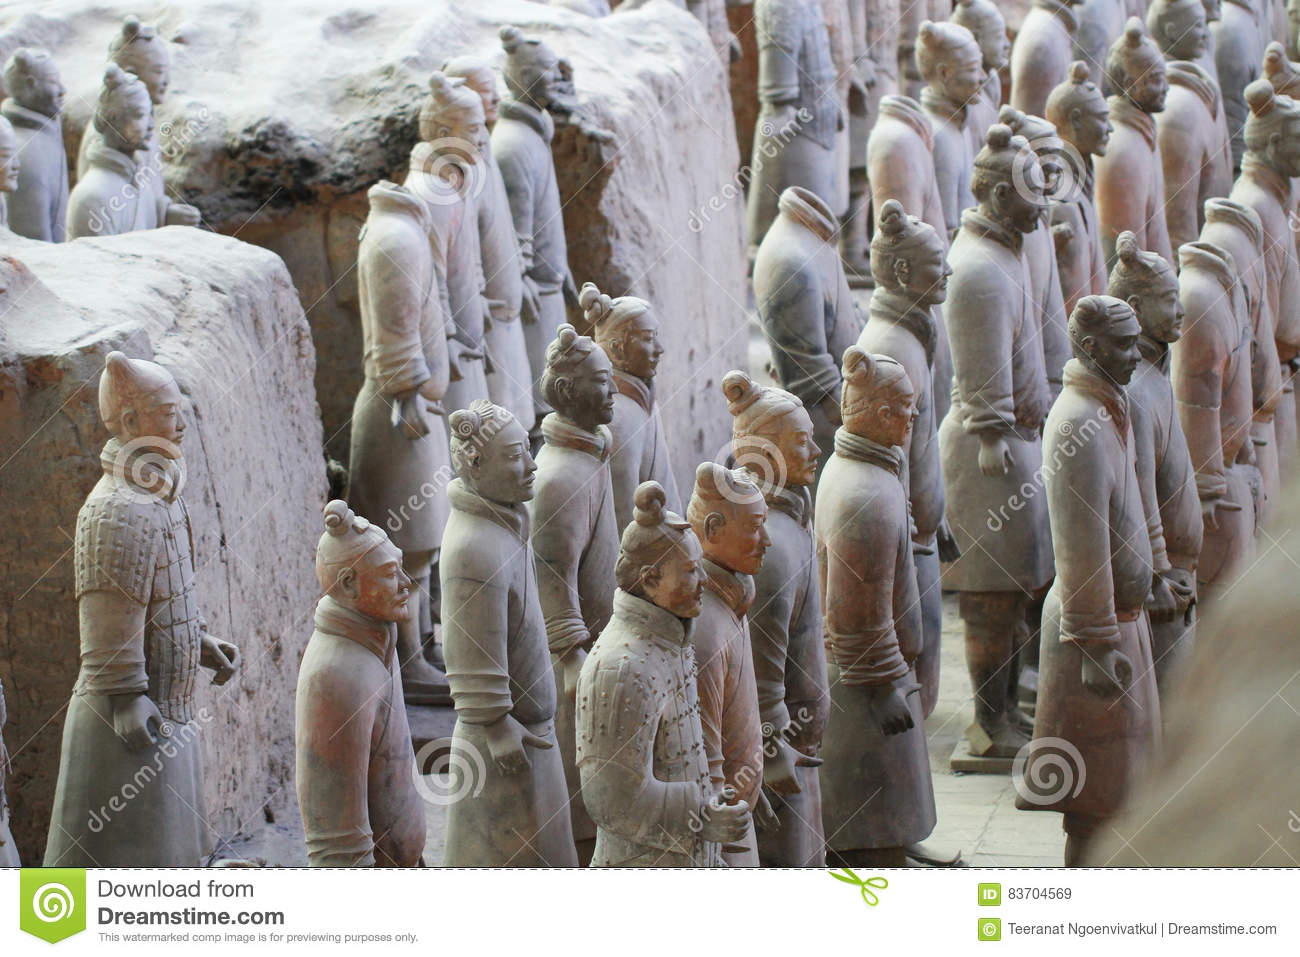 Stone army soliders with horse statue, Terracotta Army in Xian, China